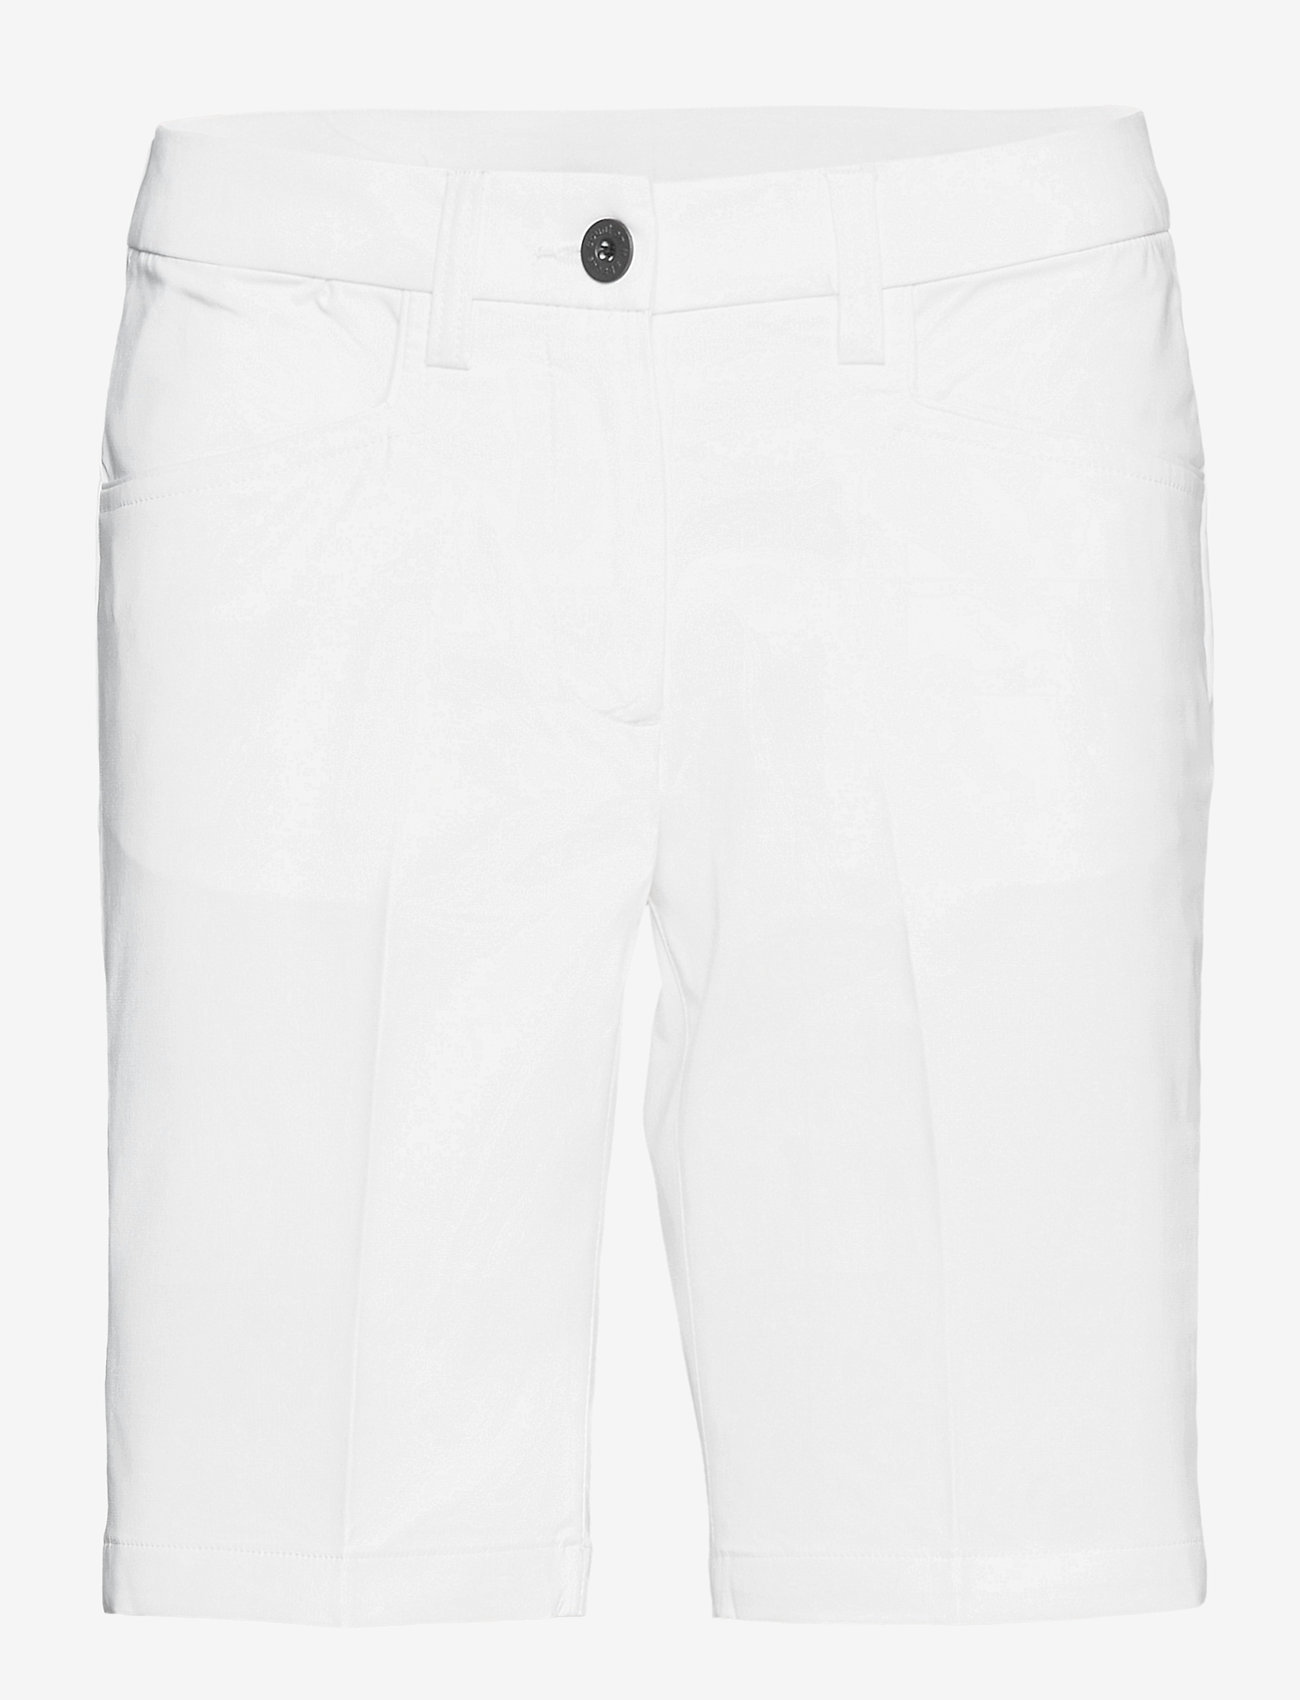 Abacus - Lds Cleek stretch shorts 46cm - golfshorts - white - 0